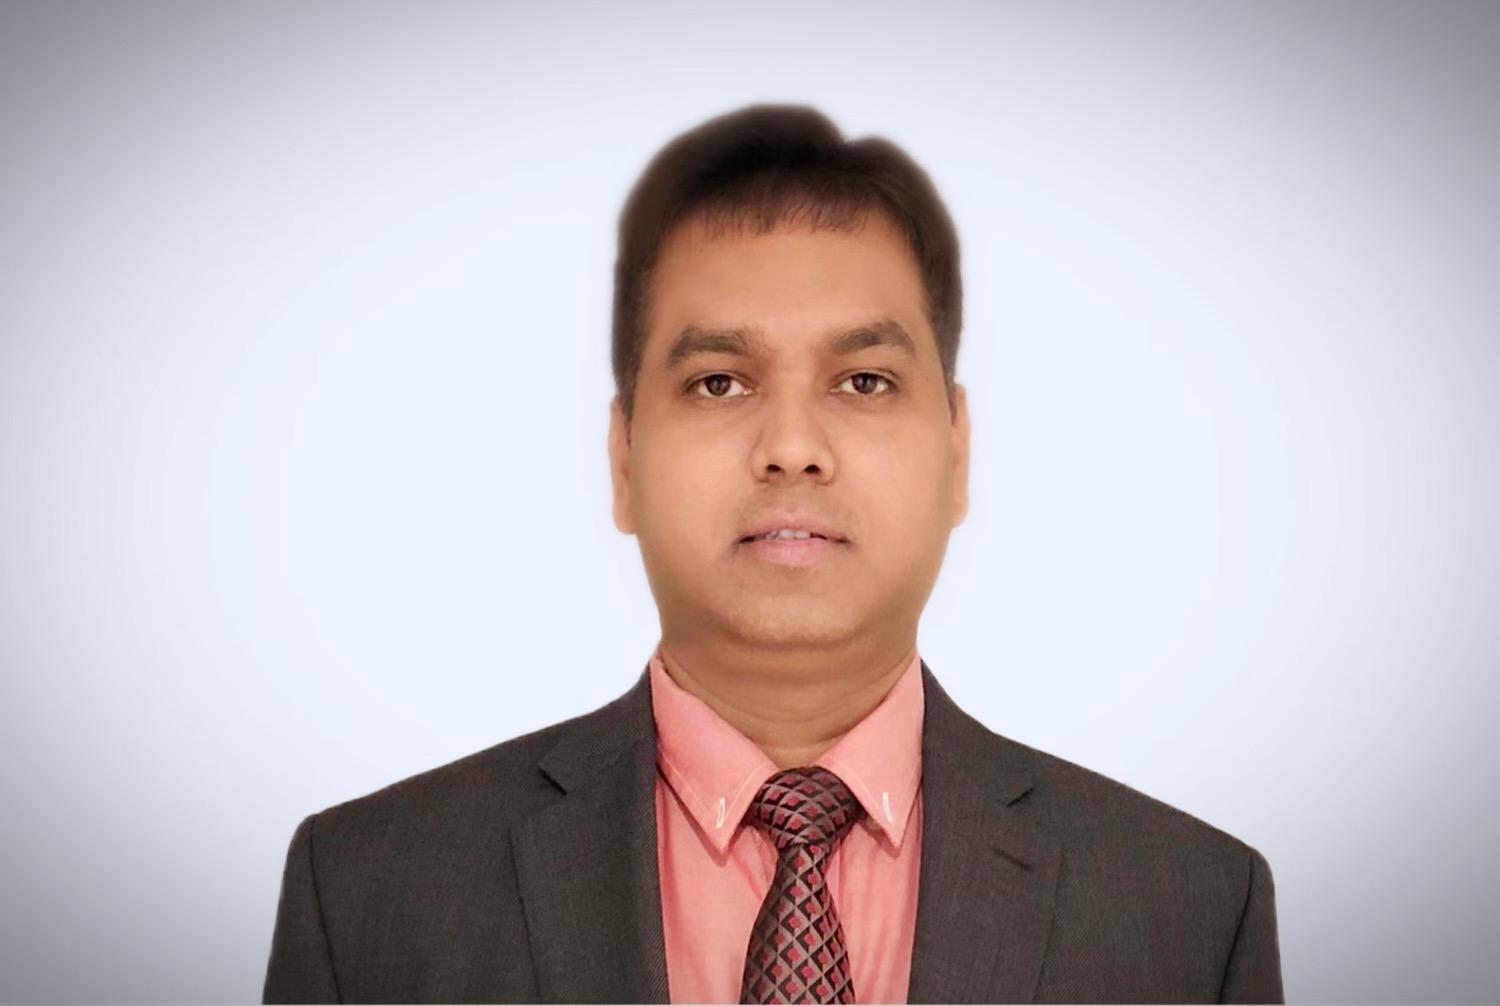 MUKESH KUMAR NO NAME GIVEN  Your Financial Professional & Insurance Agent